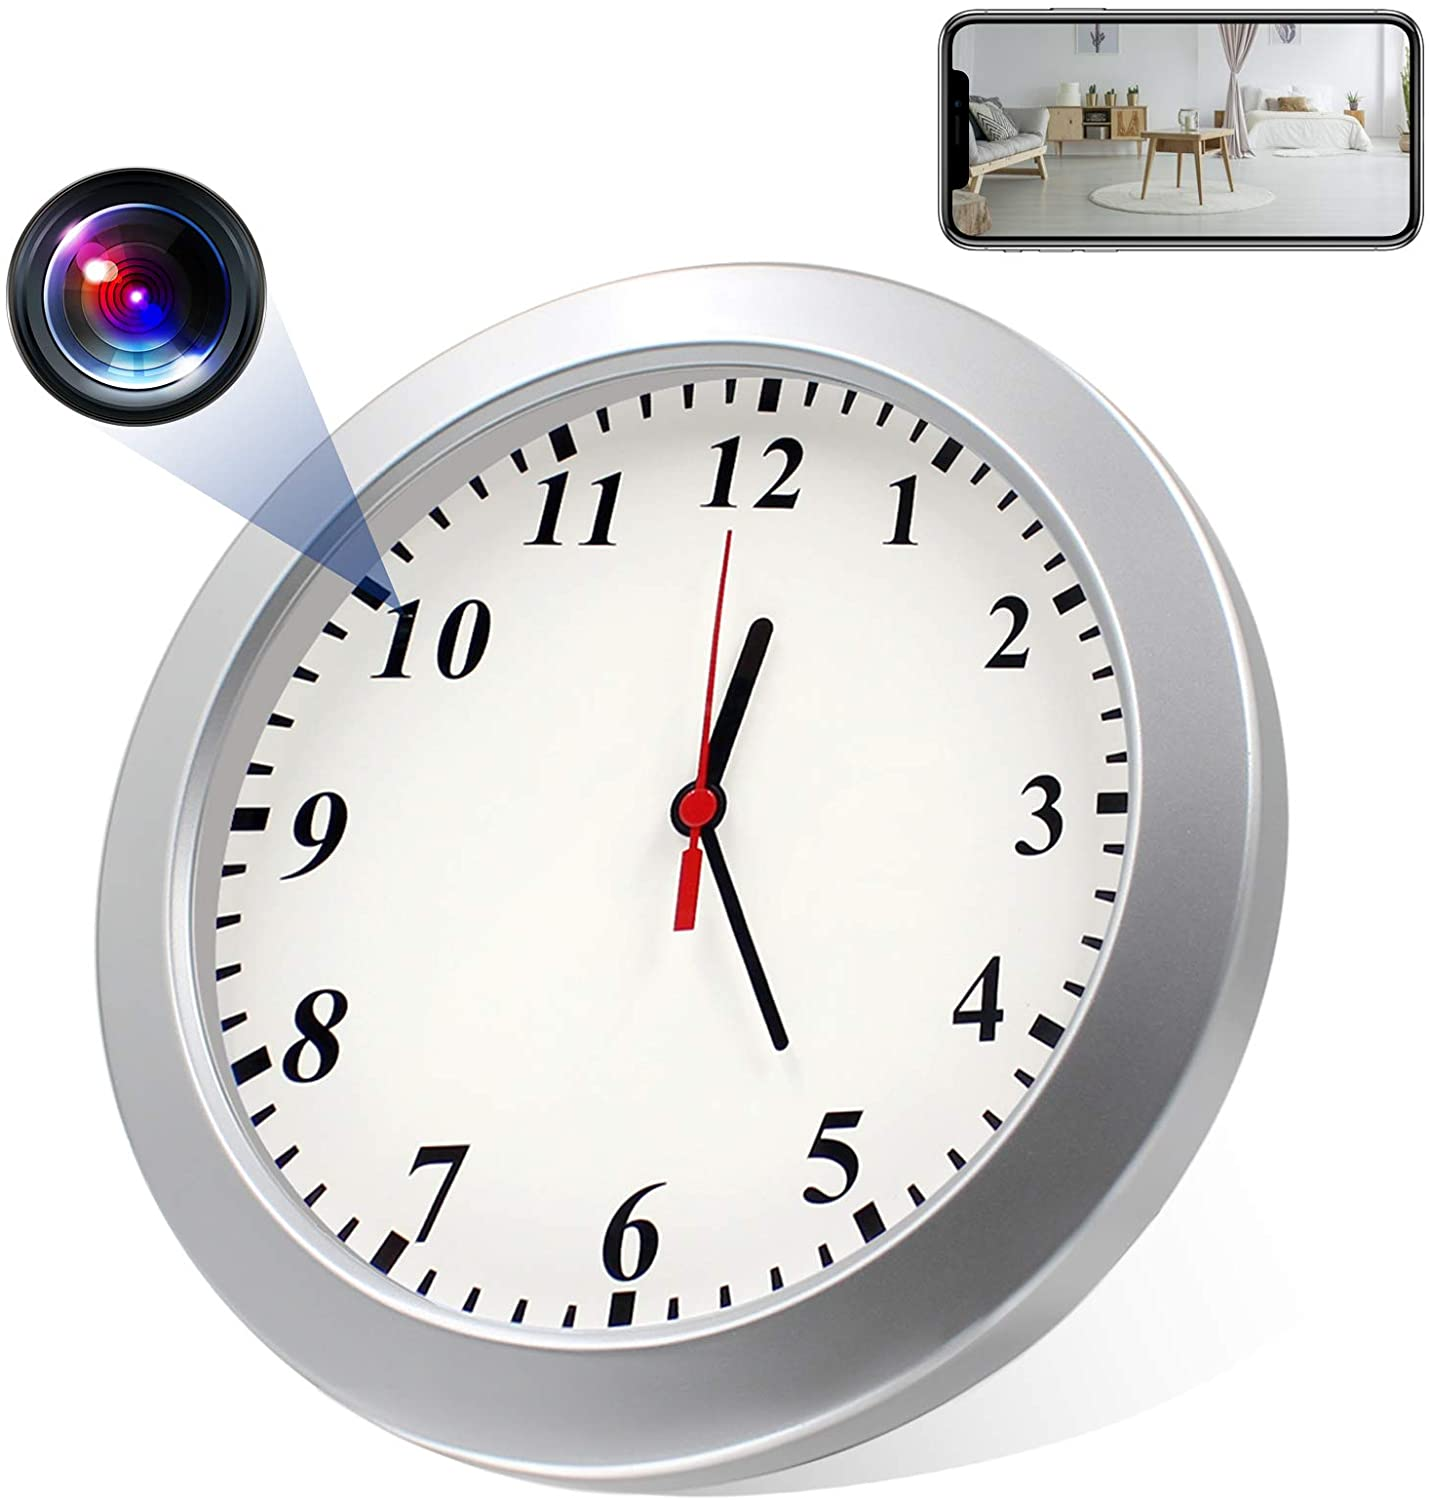 Spy Wall Clock Camera, Hidden Spy Camera Clock HD 1080P Clock Camera Nanny Camera with Motion Detector Video Recorder for Home Security and Office Security, No WiFi Needed